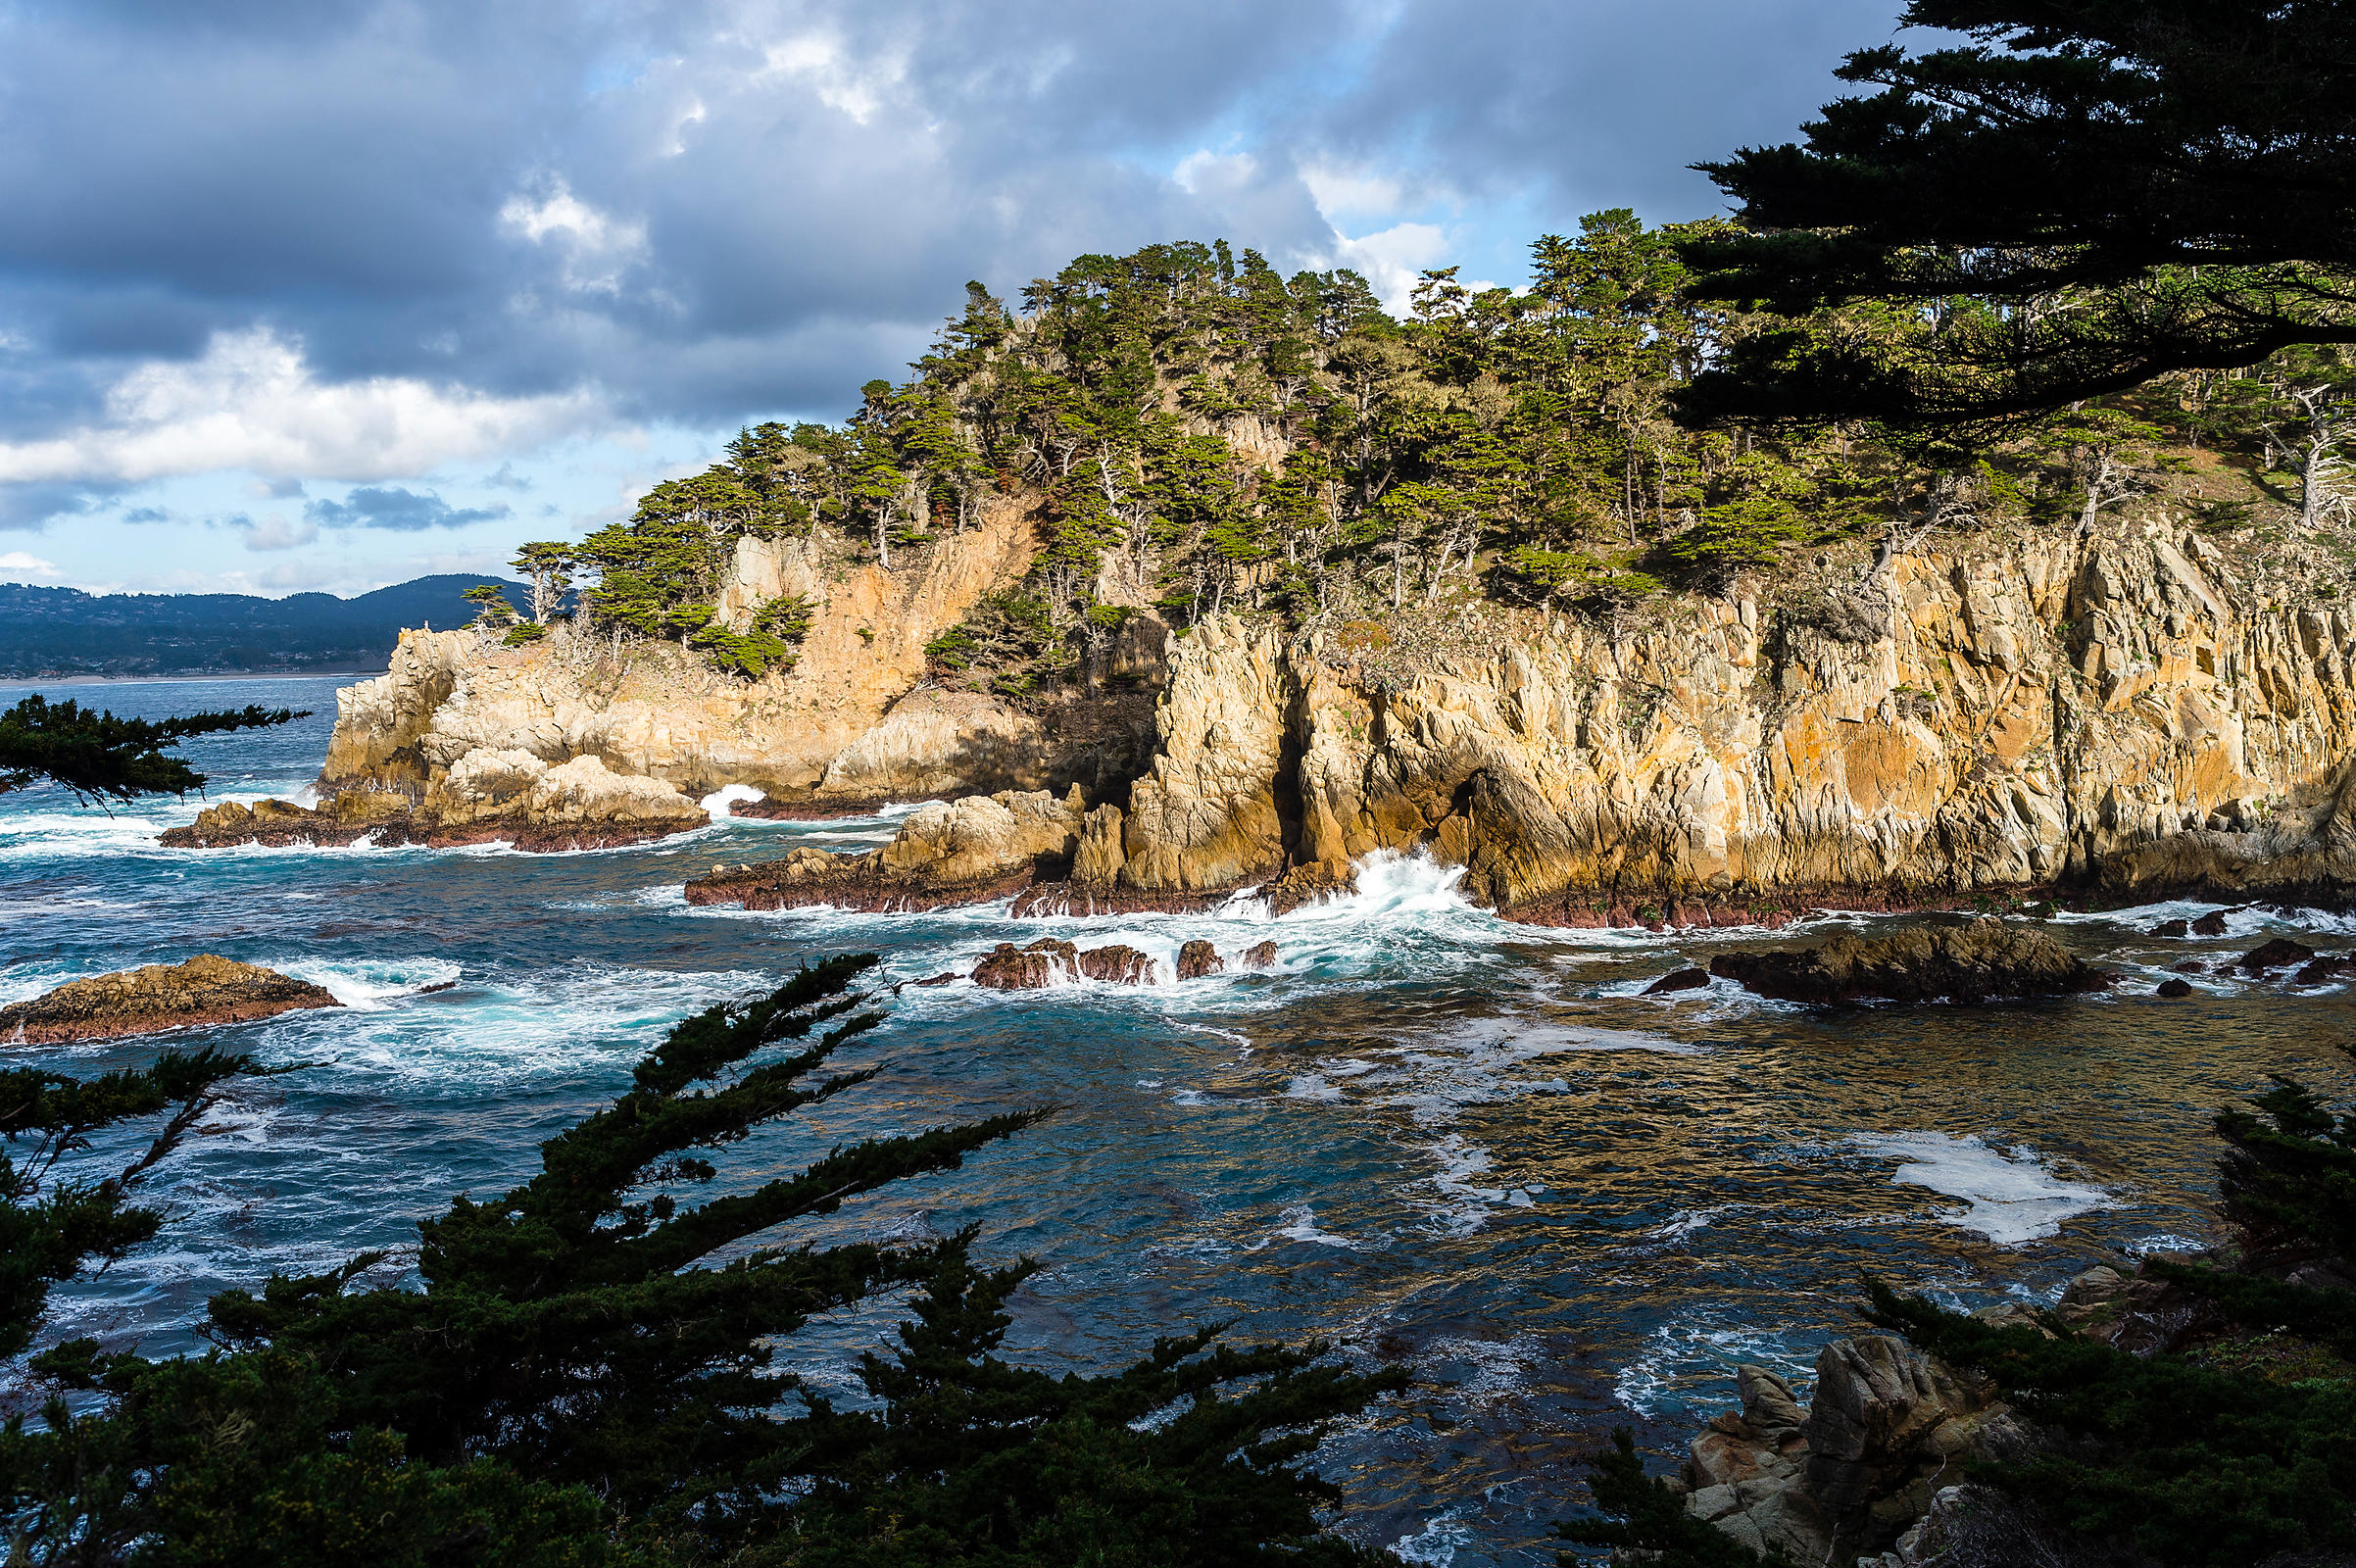 Point Lobos State Reserve, Carmel-by-the-Sea, Californie, USA.